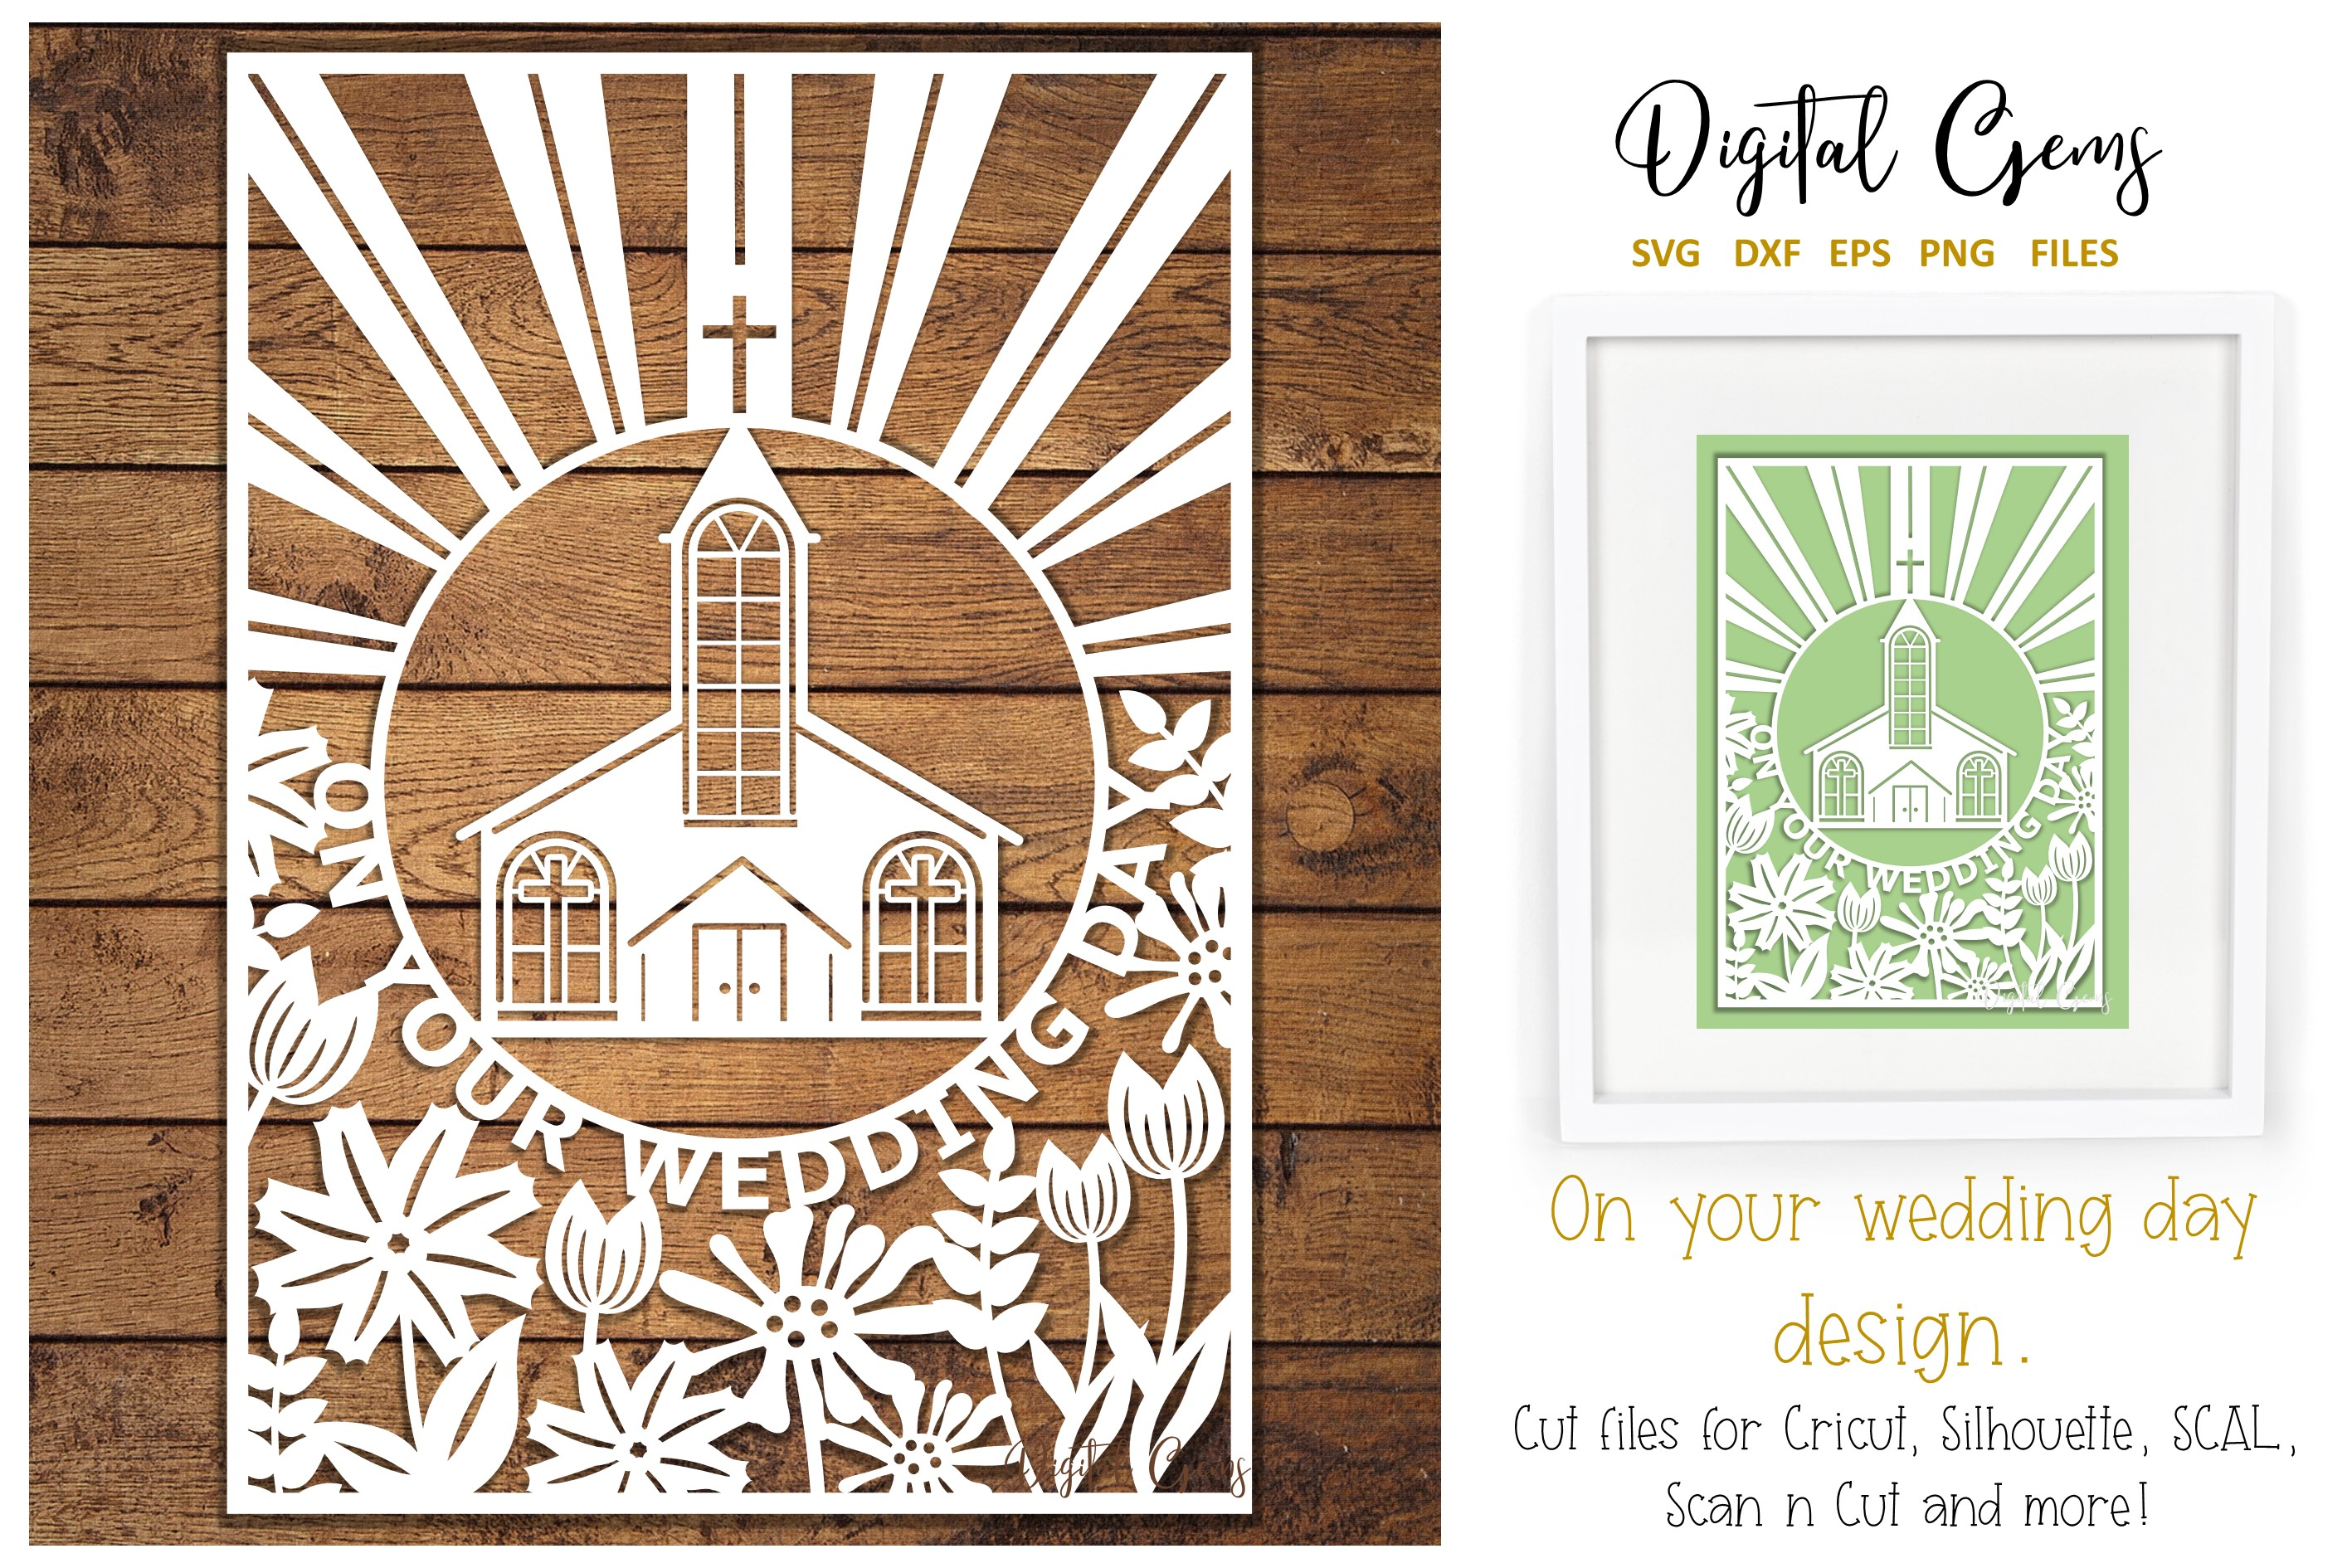 Download Free Wedding Papercut Design Graphic By Digital Gems Creative Fabrica for Cricut Explore, Silhouette and other cutting machines.